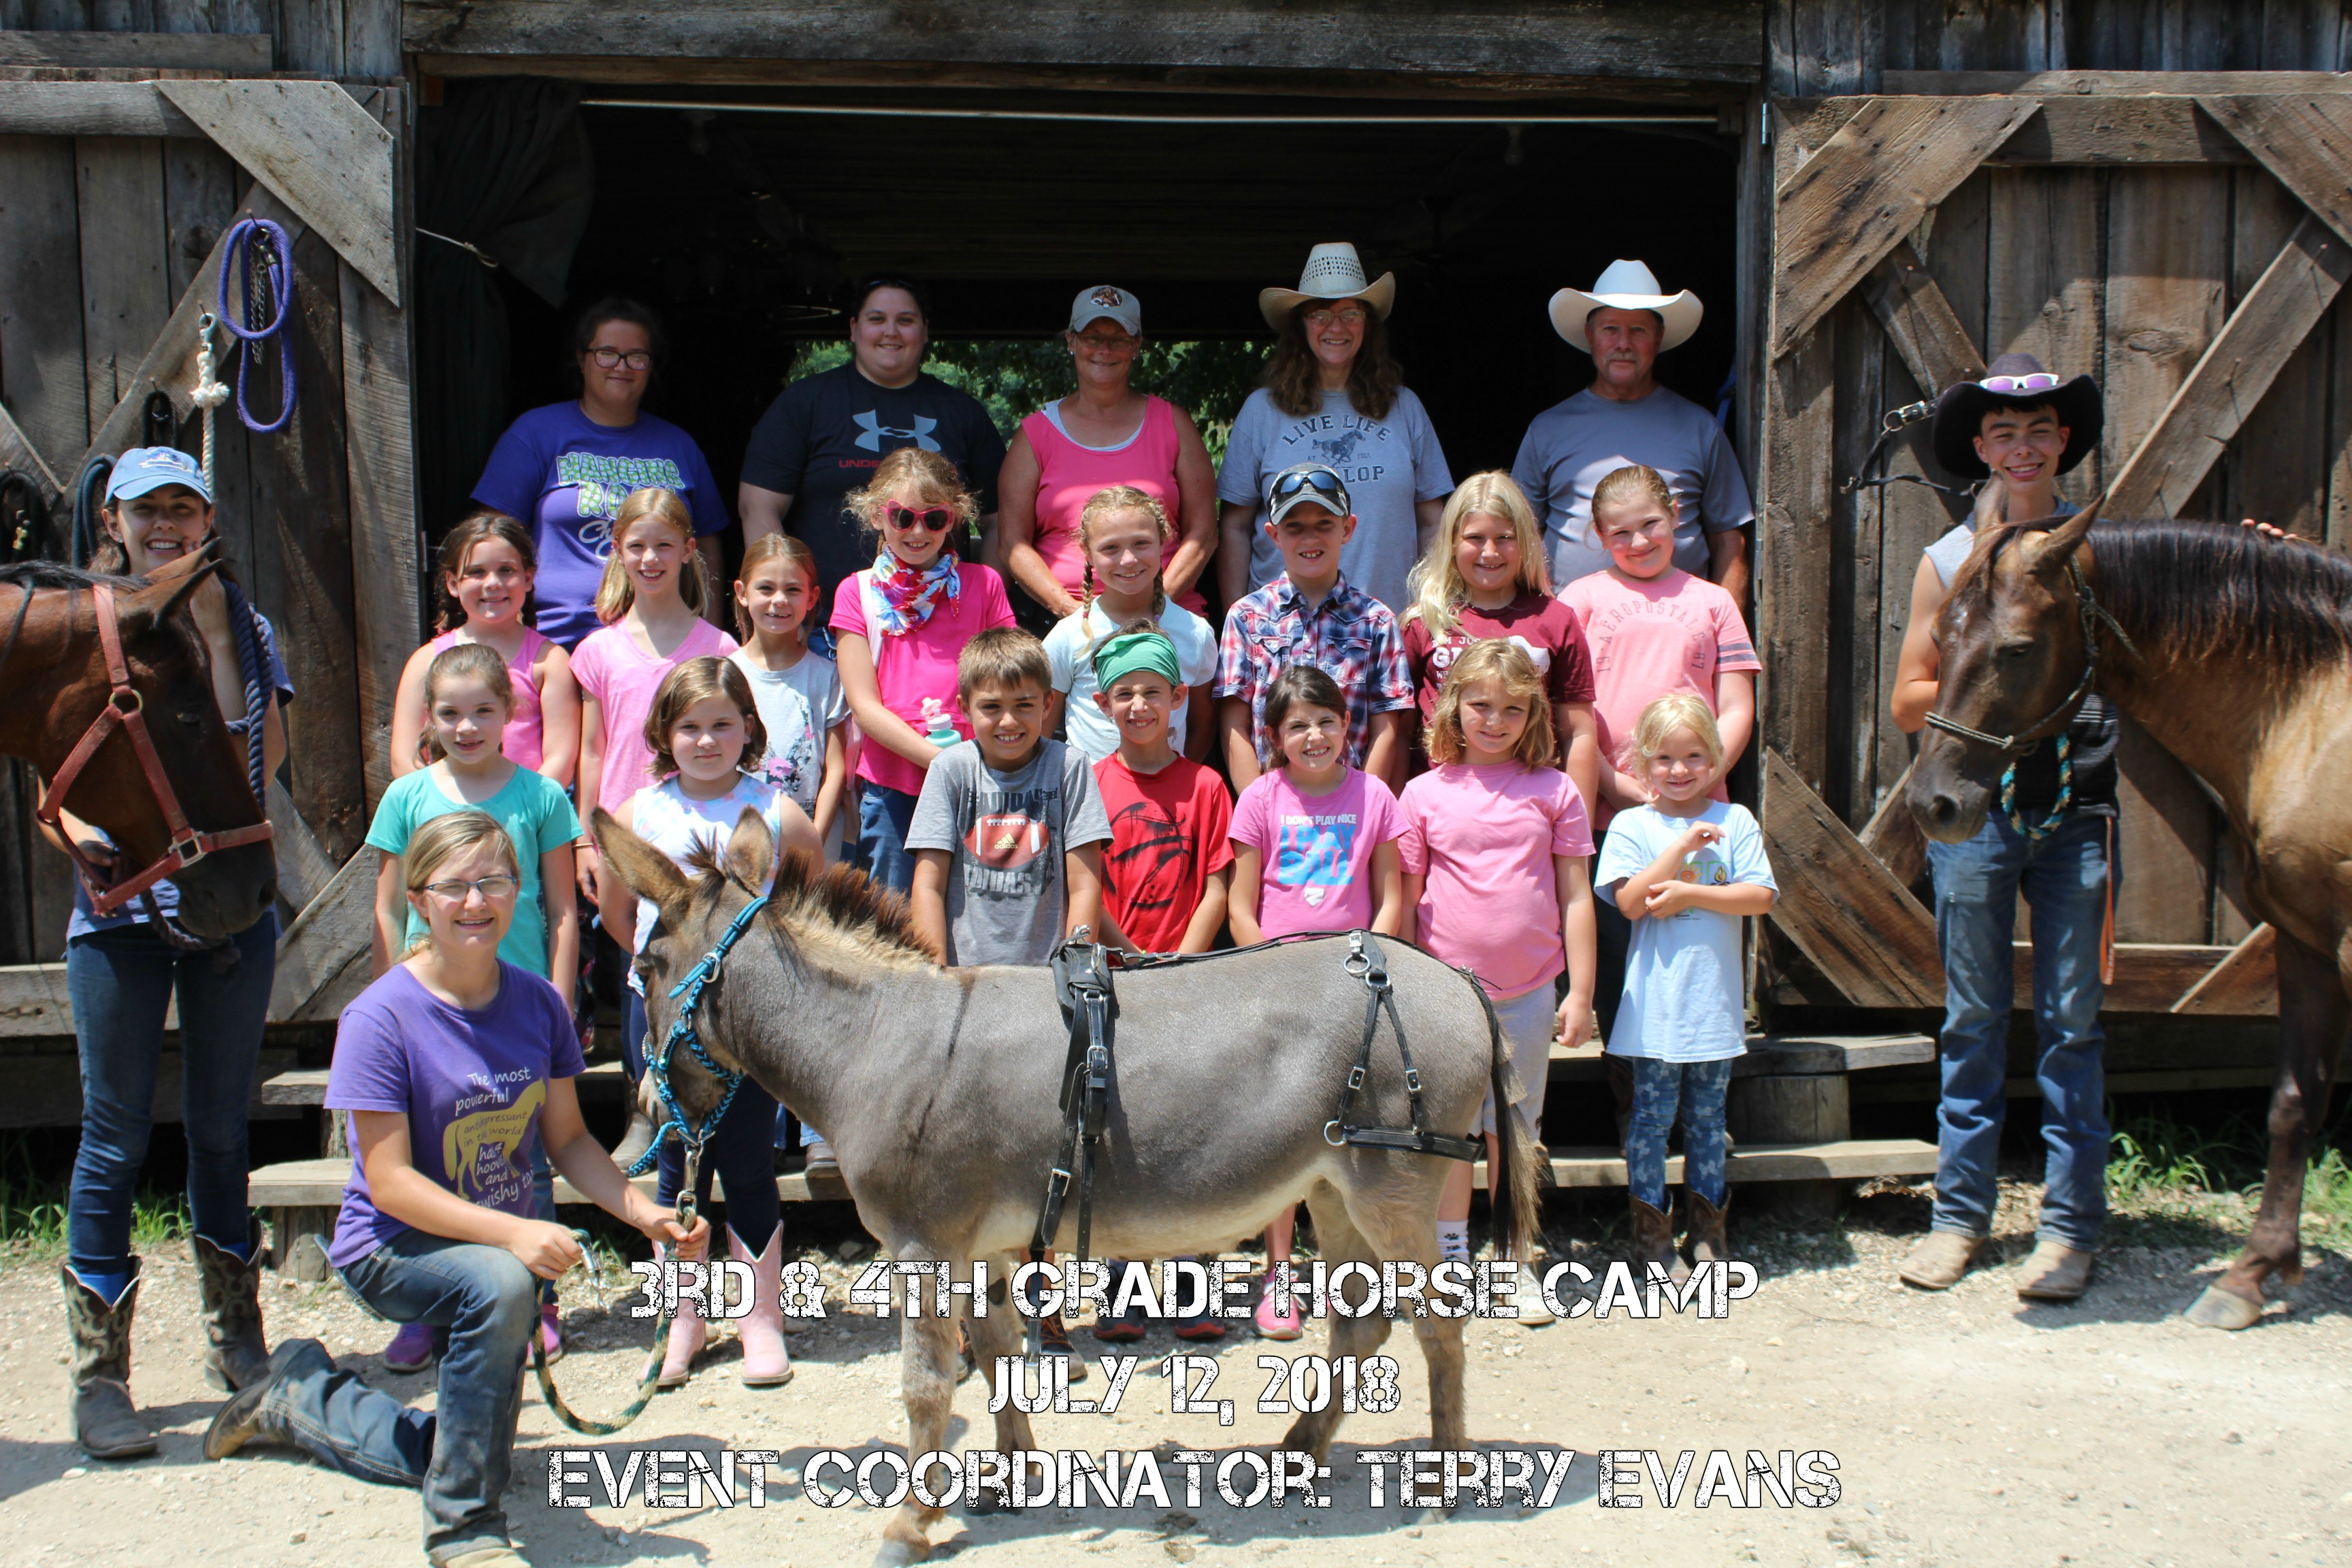 3rd and 4th Grade Horse Camp